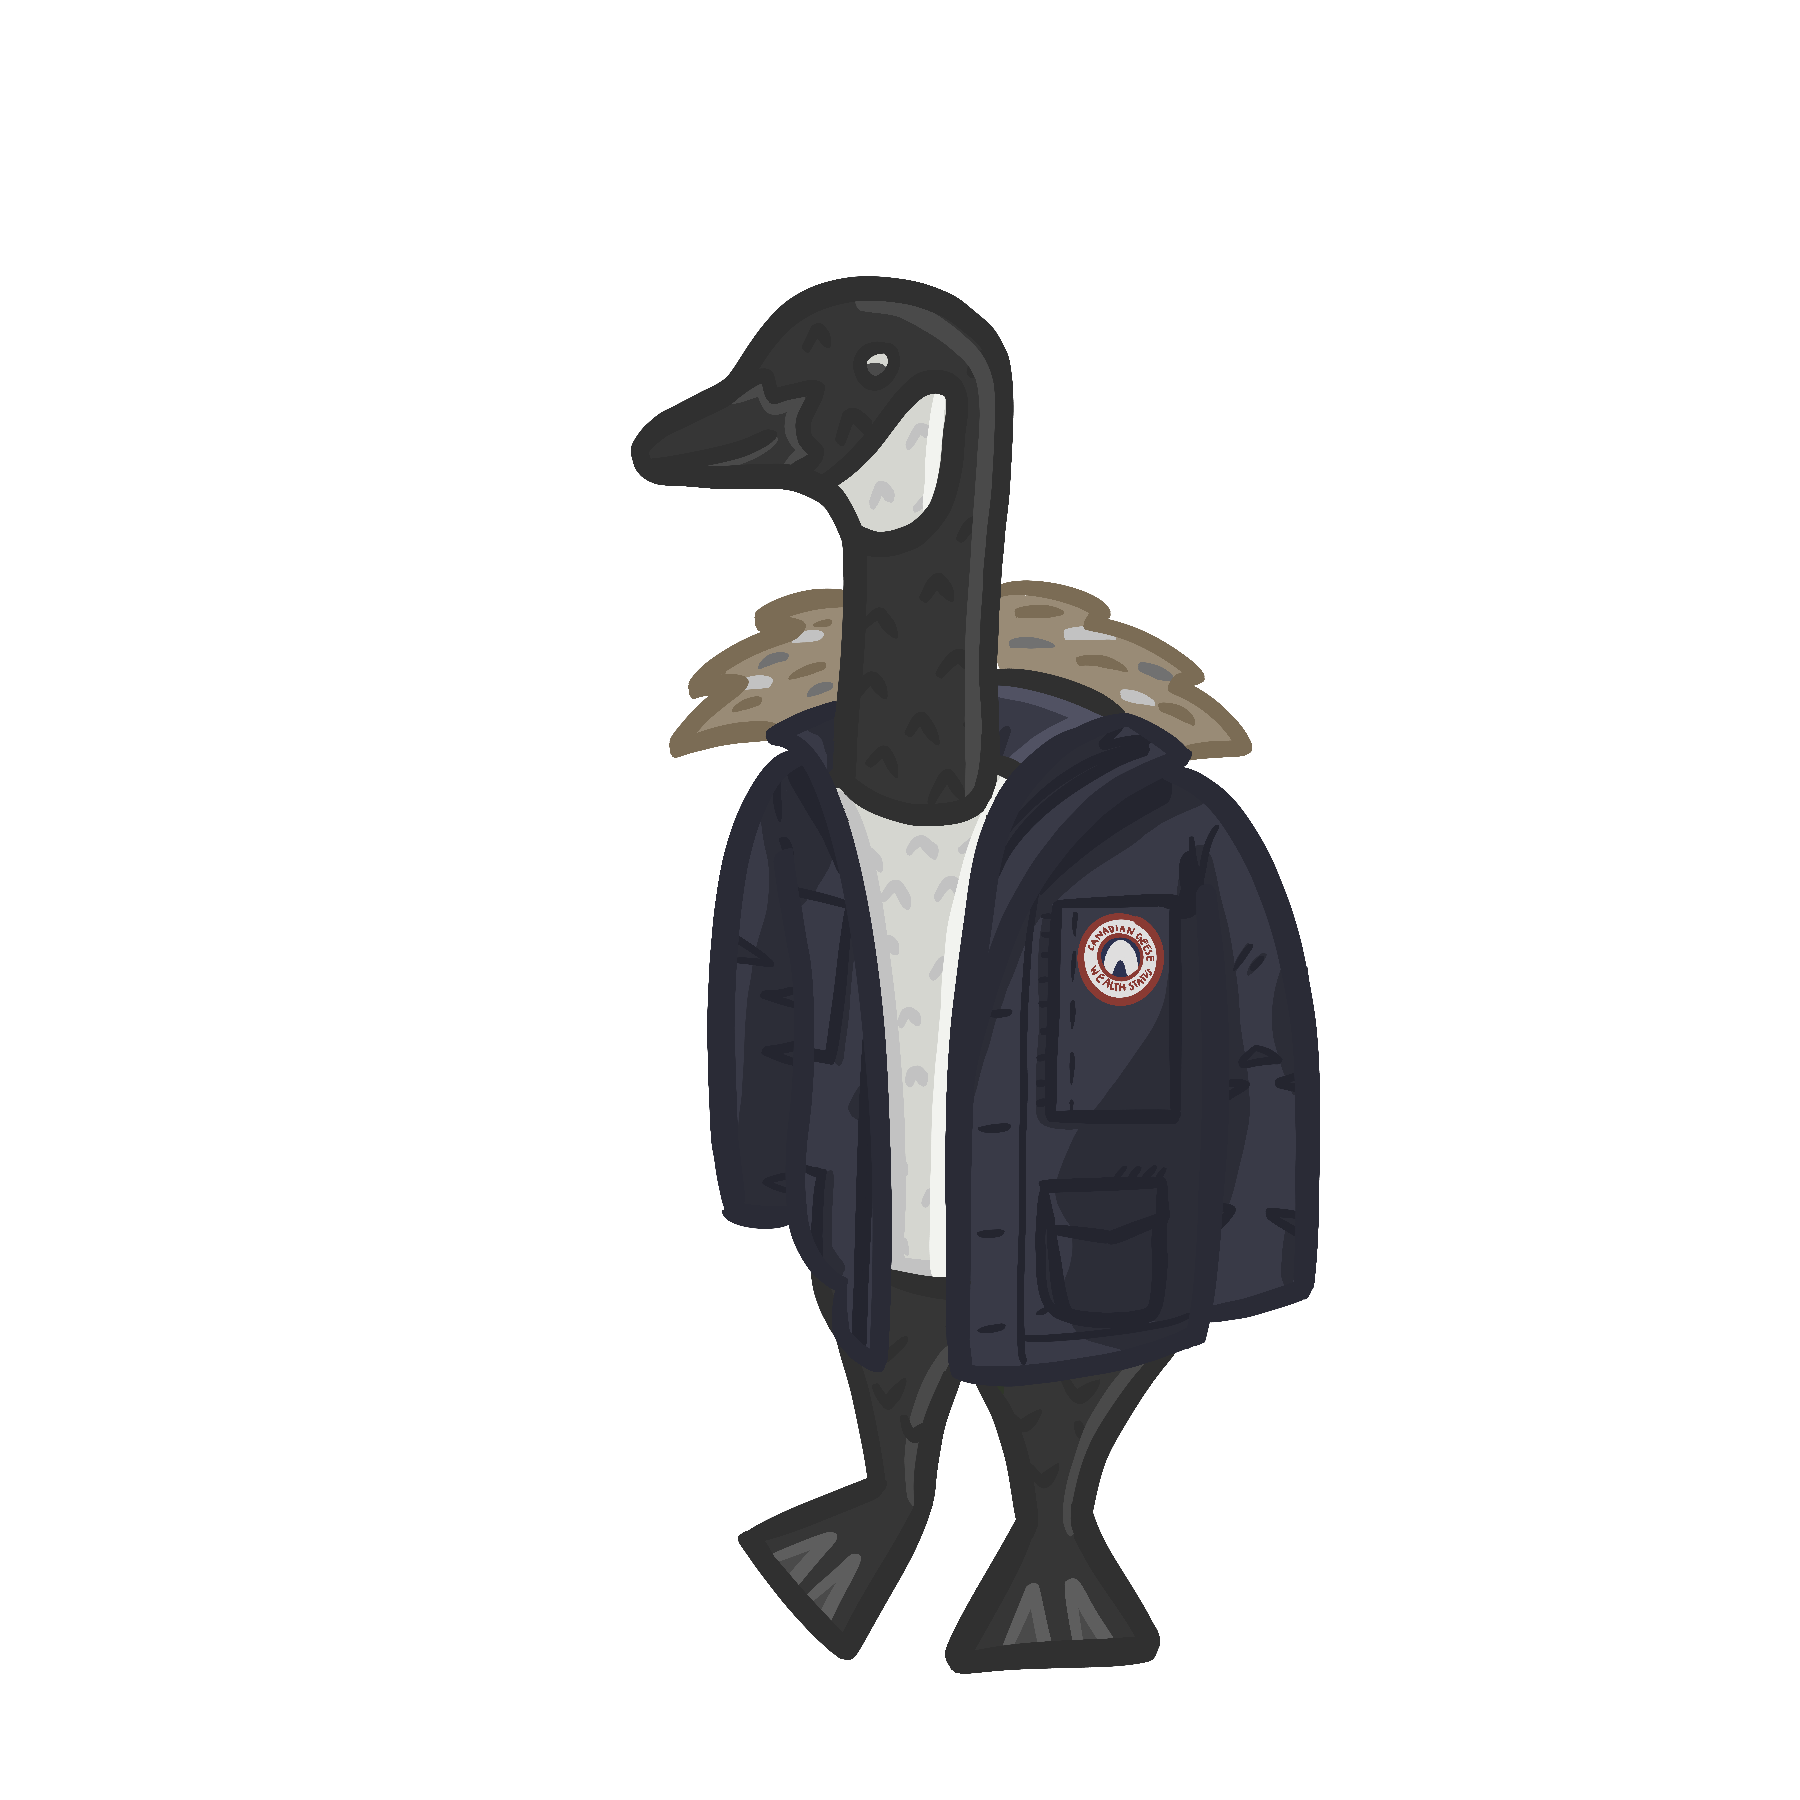 Image of a cartoon Canadian Goose wearing a blue Canada Goose jacket